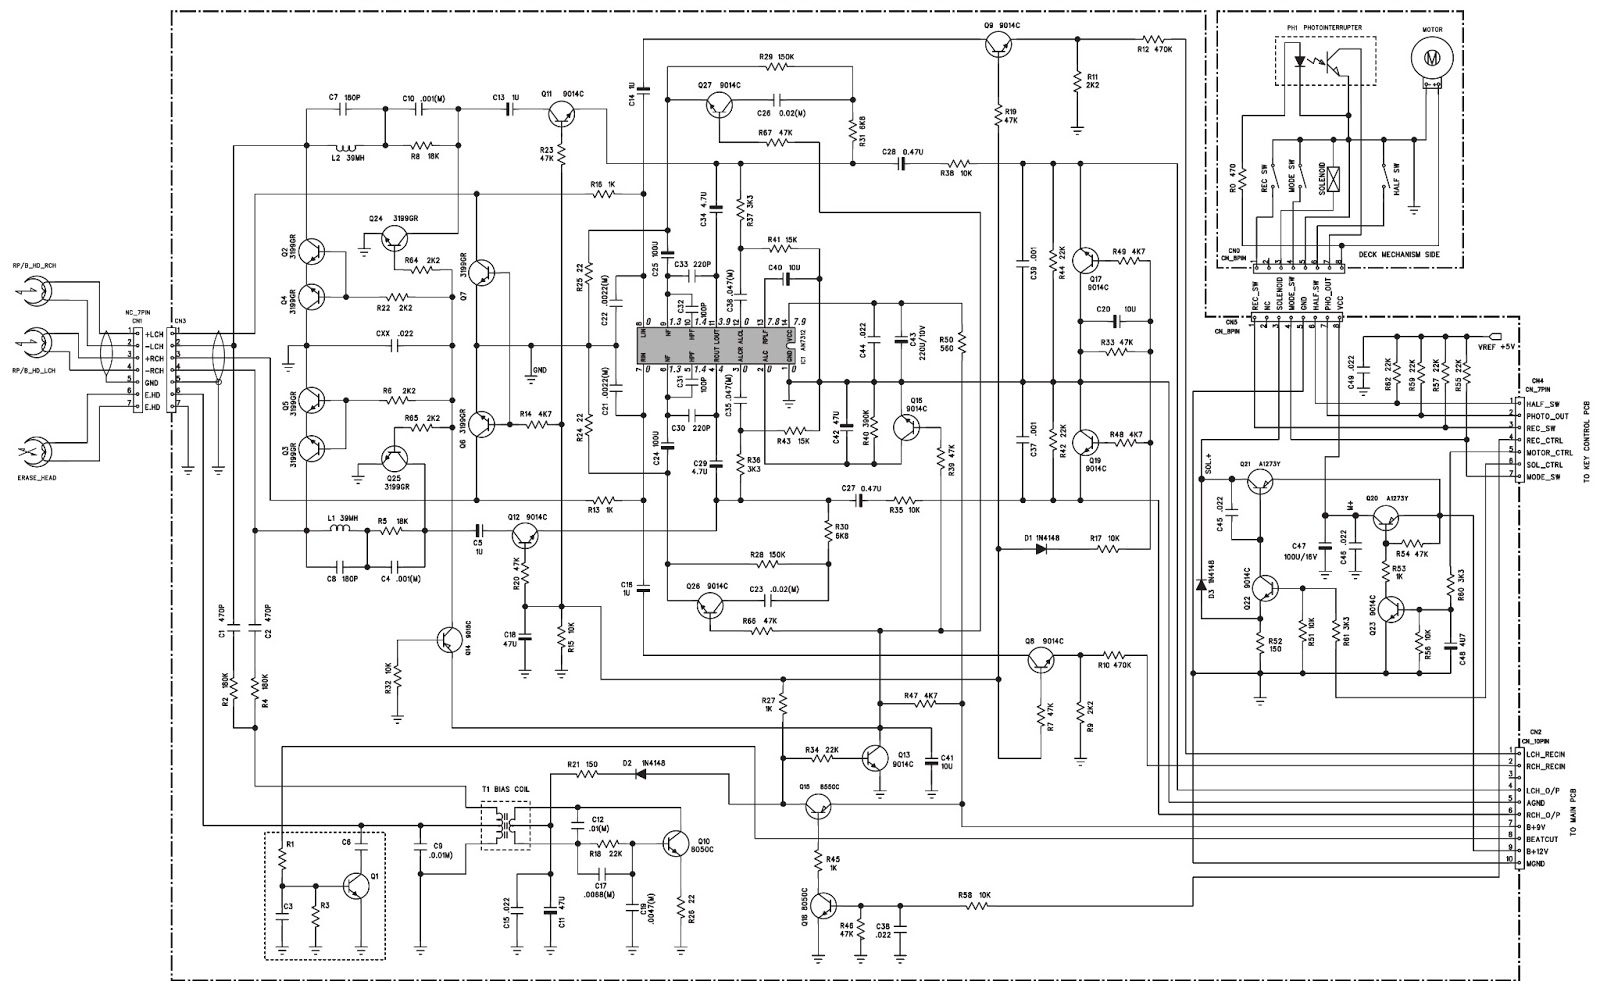 yamaha+motor+and+head+pre.bmp yamaha _ thomson cs 100 cs 105 schematic diagram [circuit yamaha schematic diagram at n-0.co